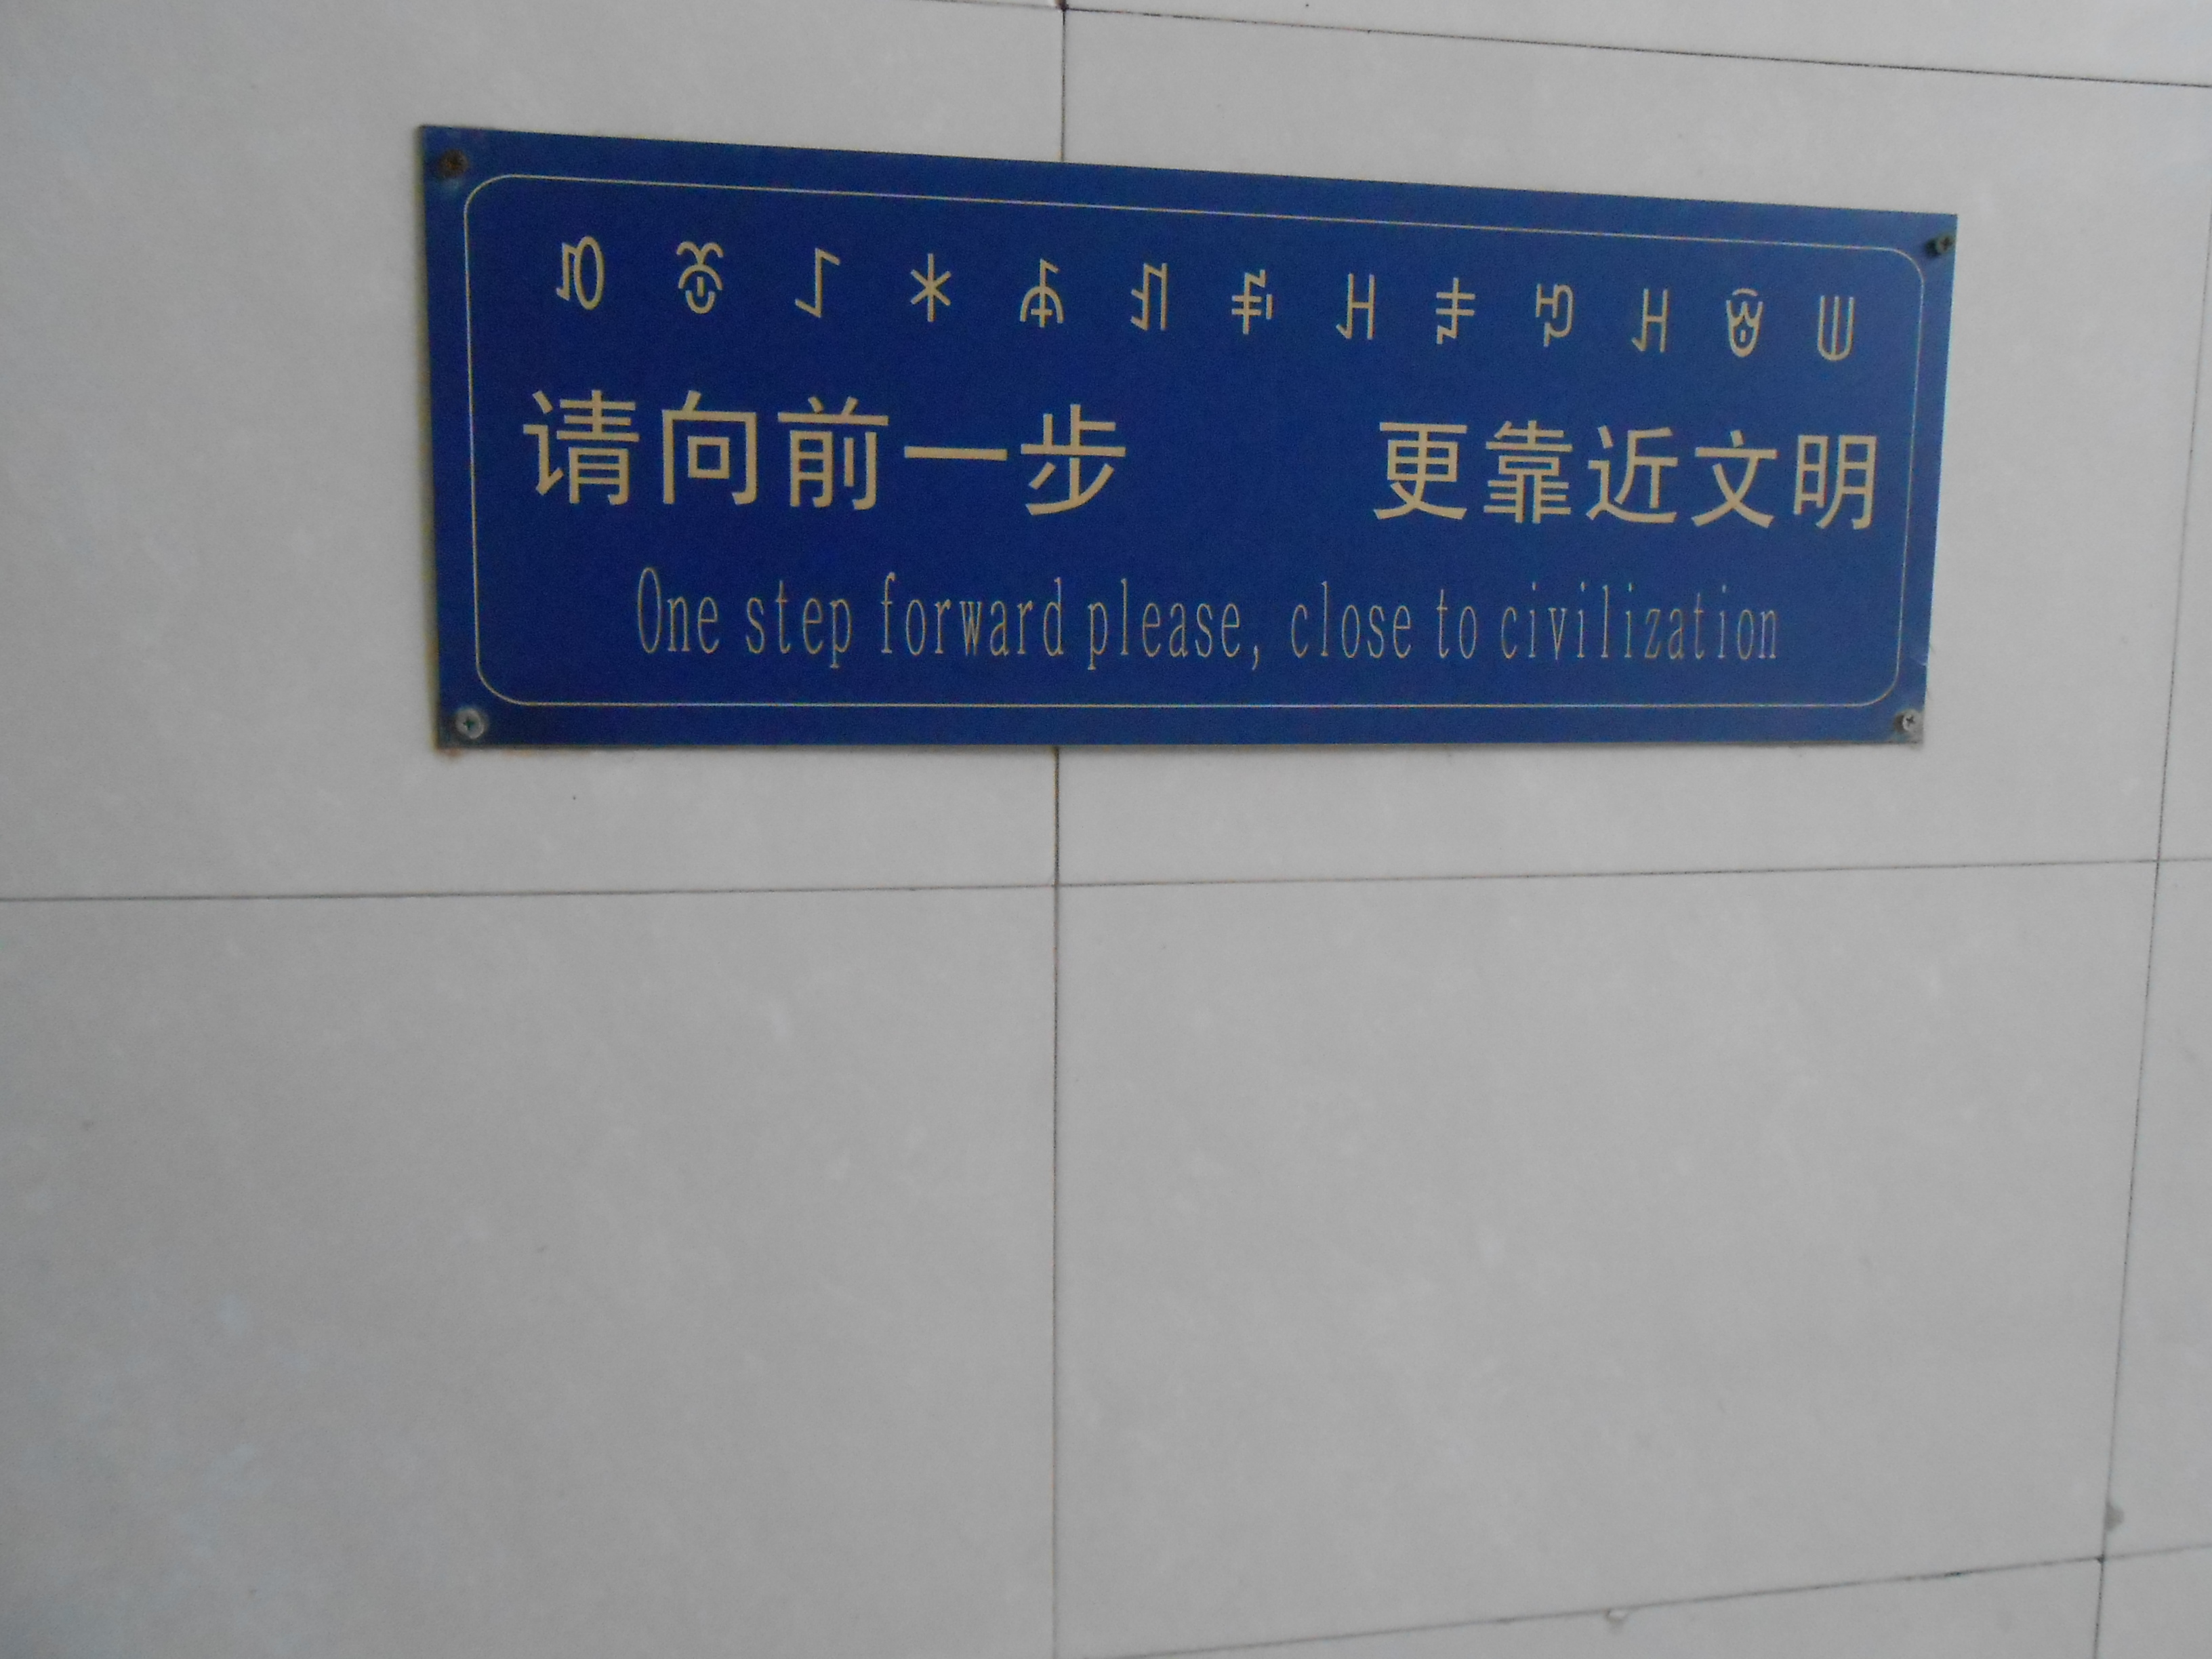 Bathroom Signs History file:trilingual bathroom sign in xichang - wikimedia commons